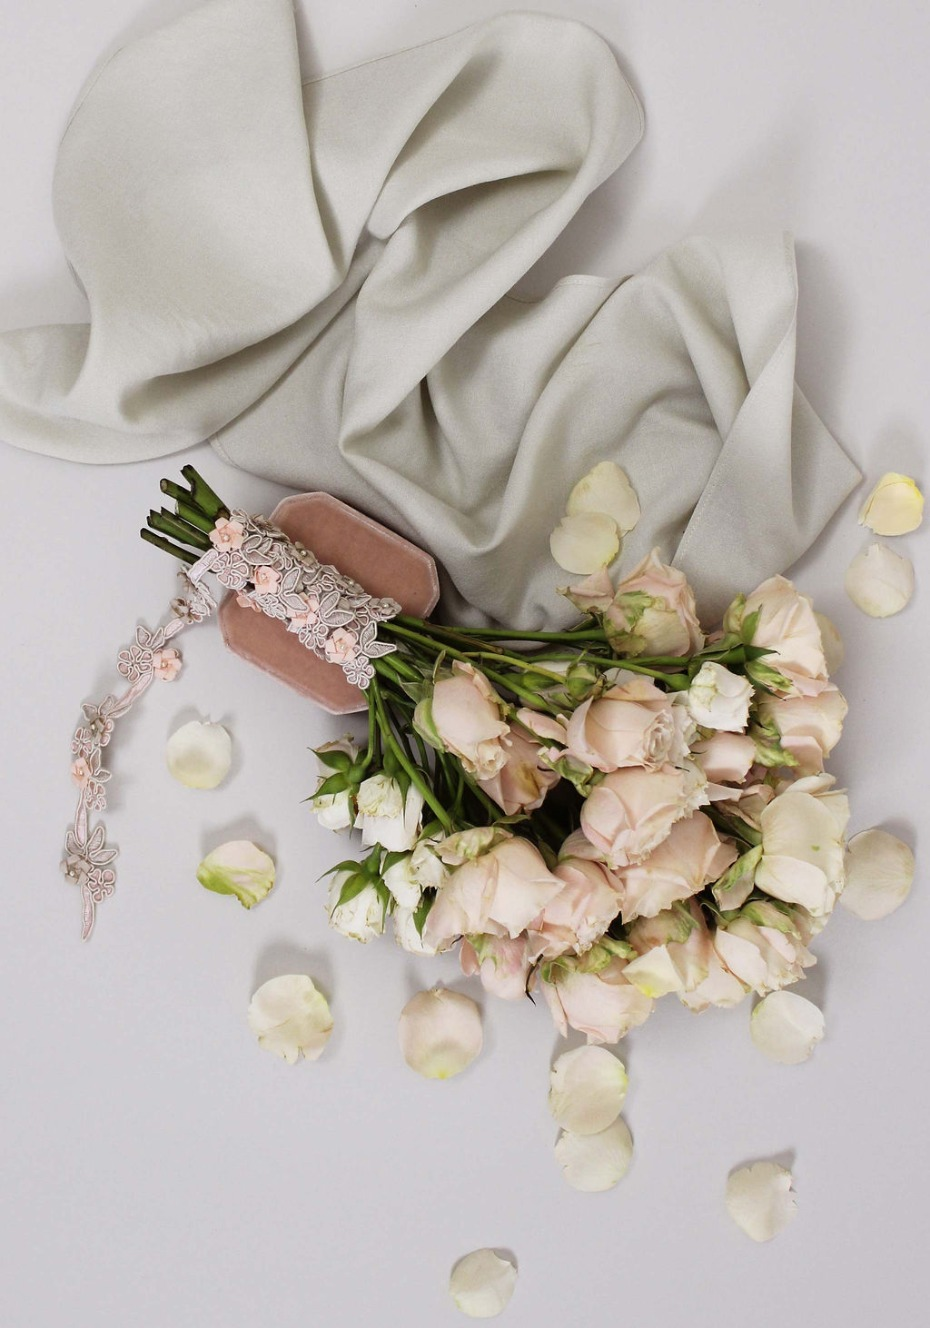 Claire Pettibone's New Heirloom Embellishments Collection Is Flat Lay Perfection